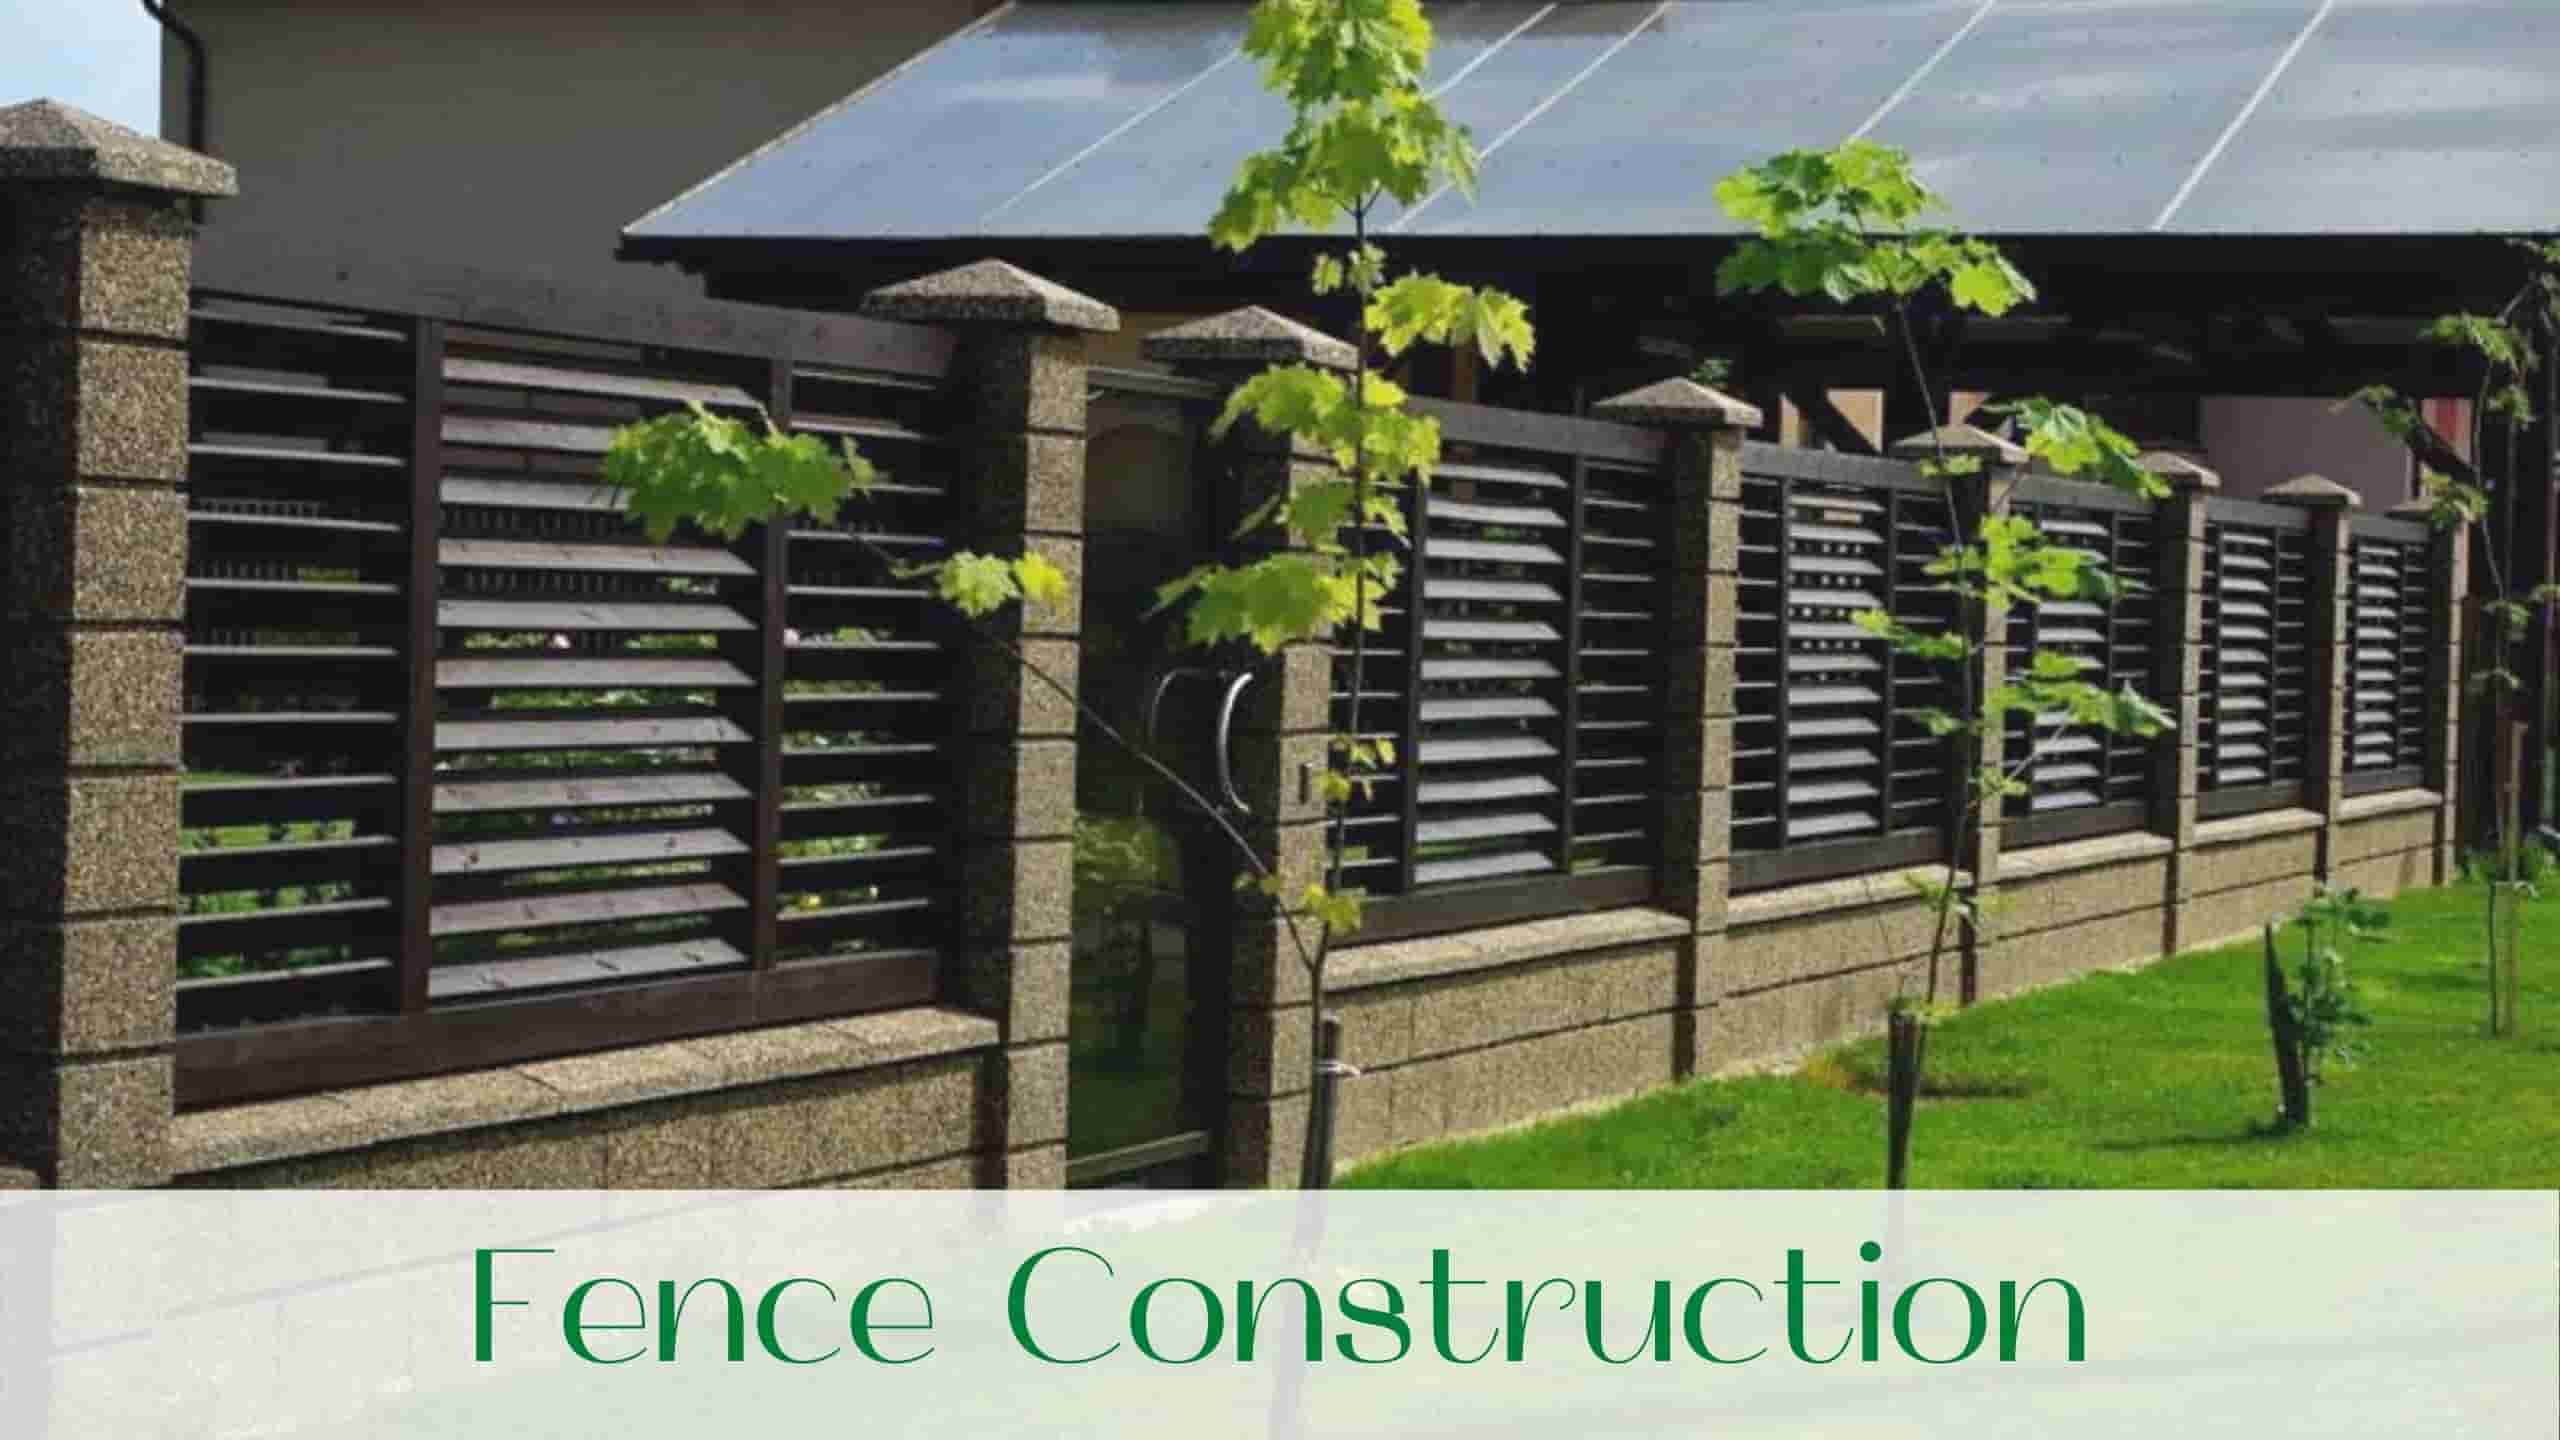 image-fence-construction